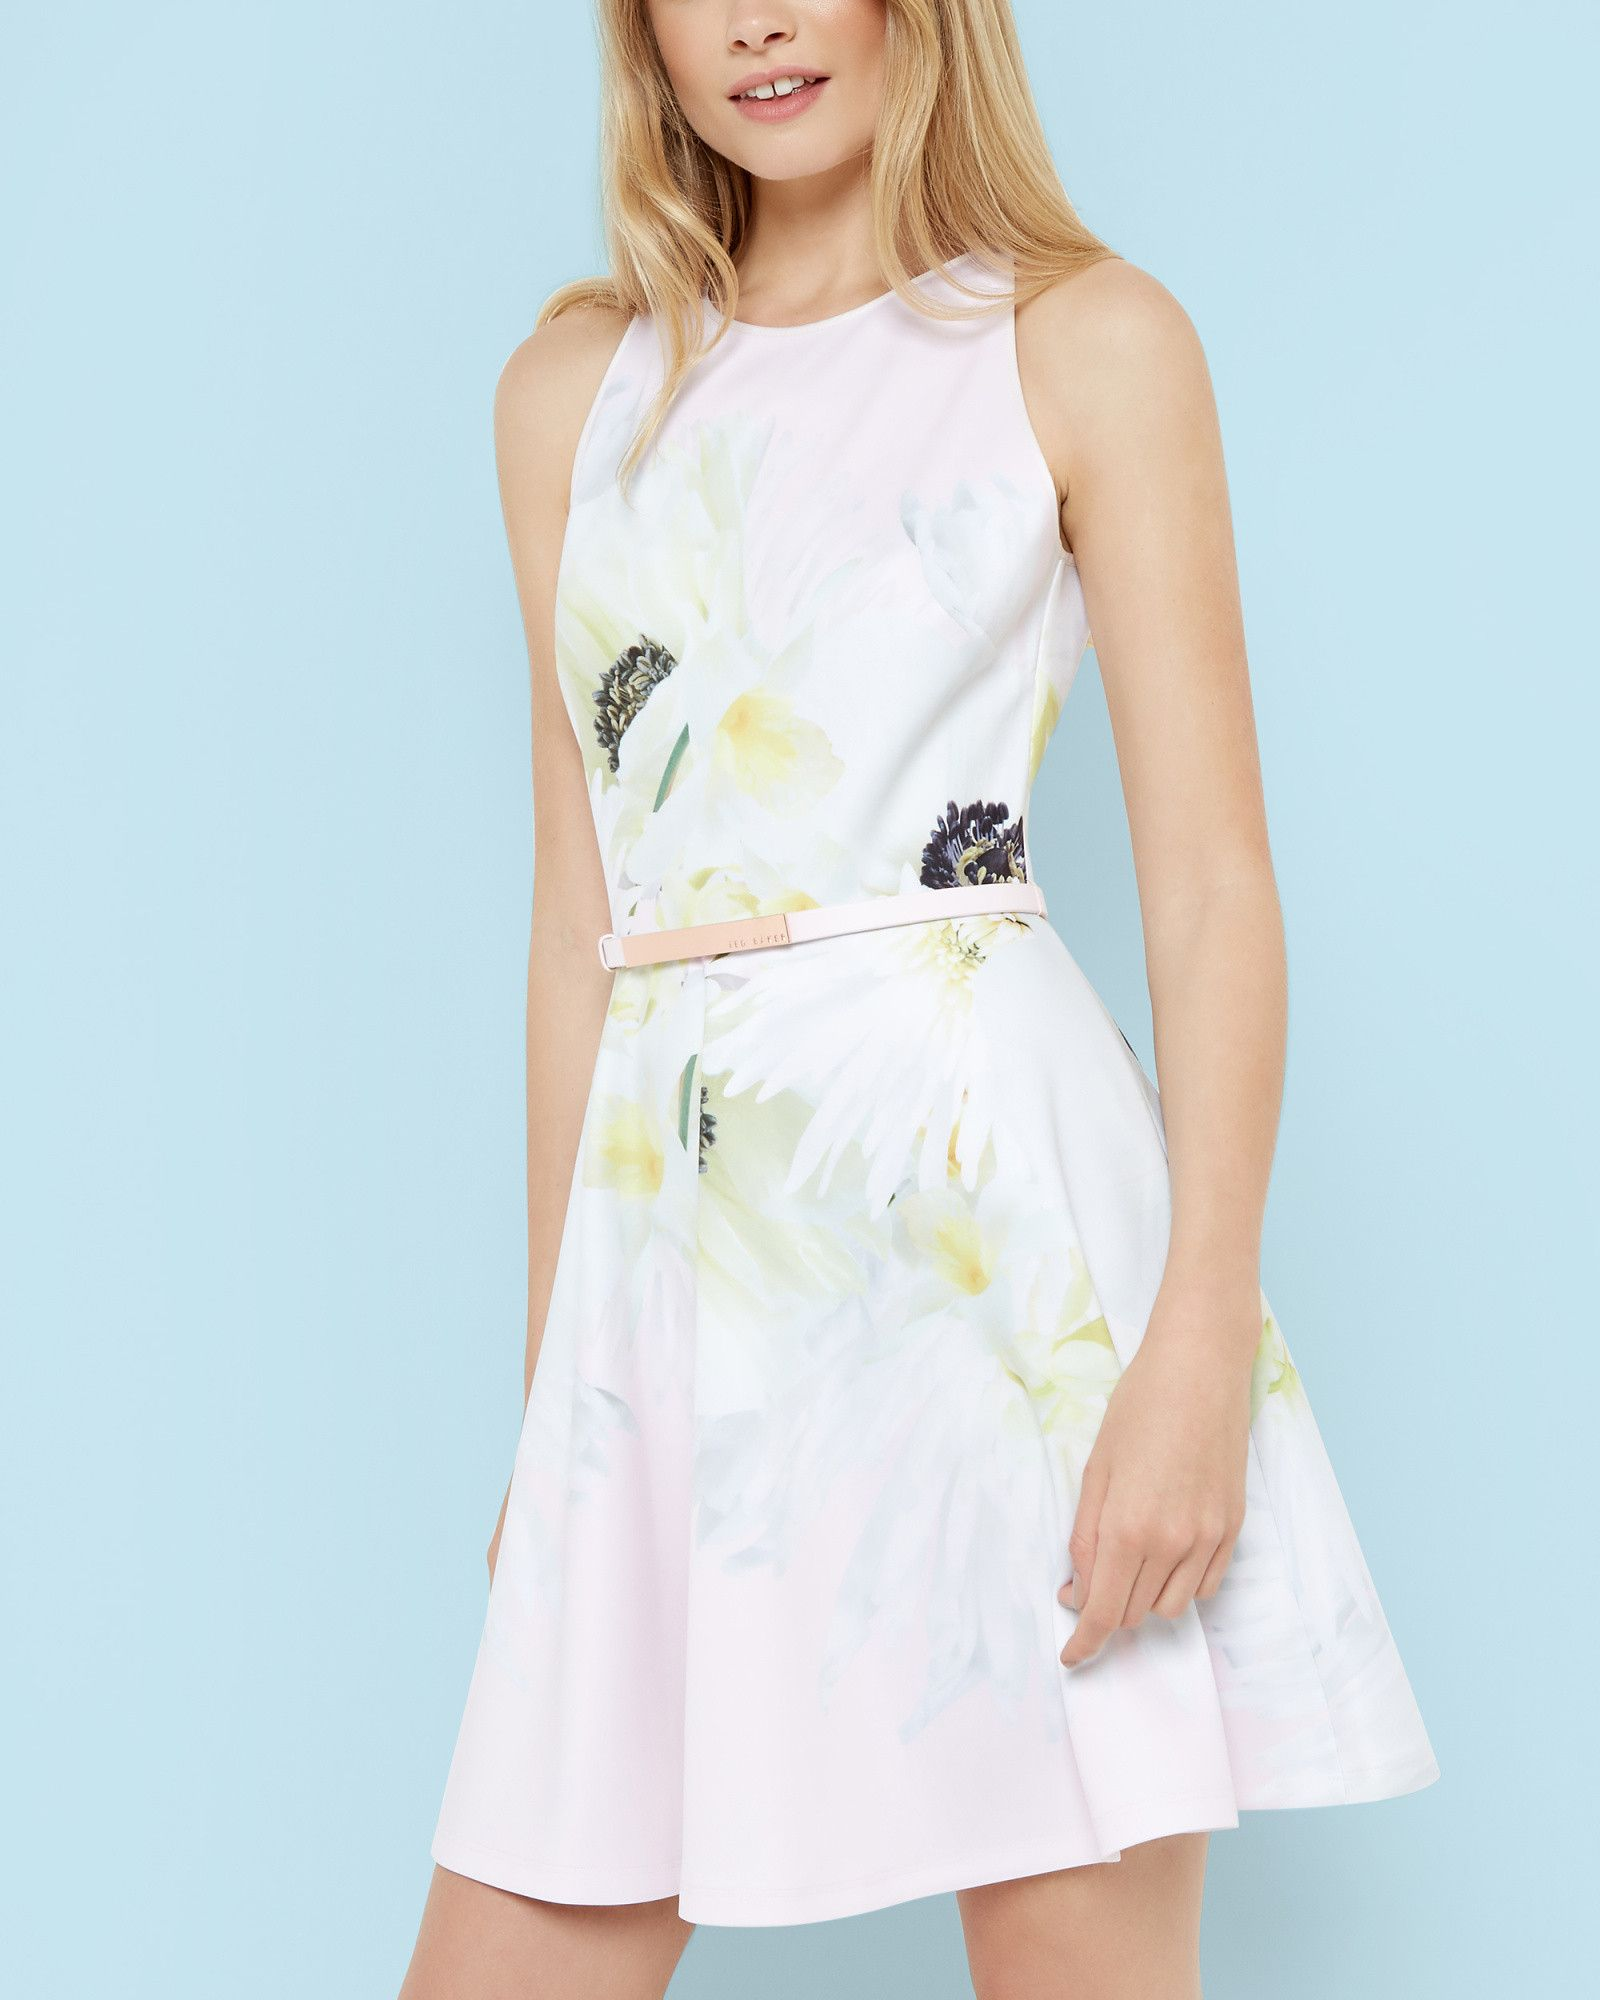 Ted Baker Pearly Petal skater dress Pink | Ted, Ted baker outlet and ...